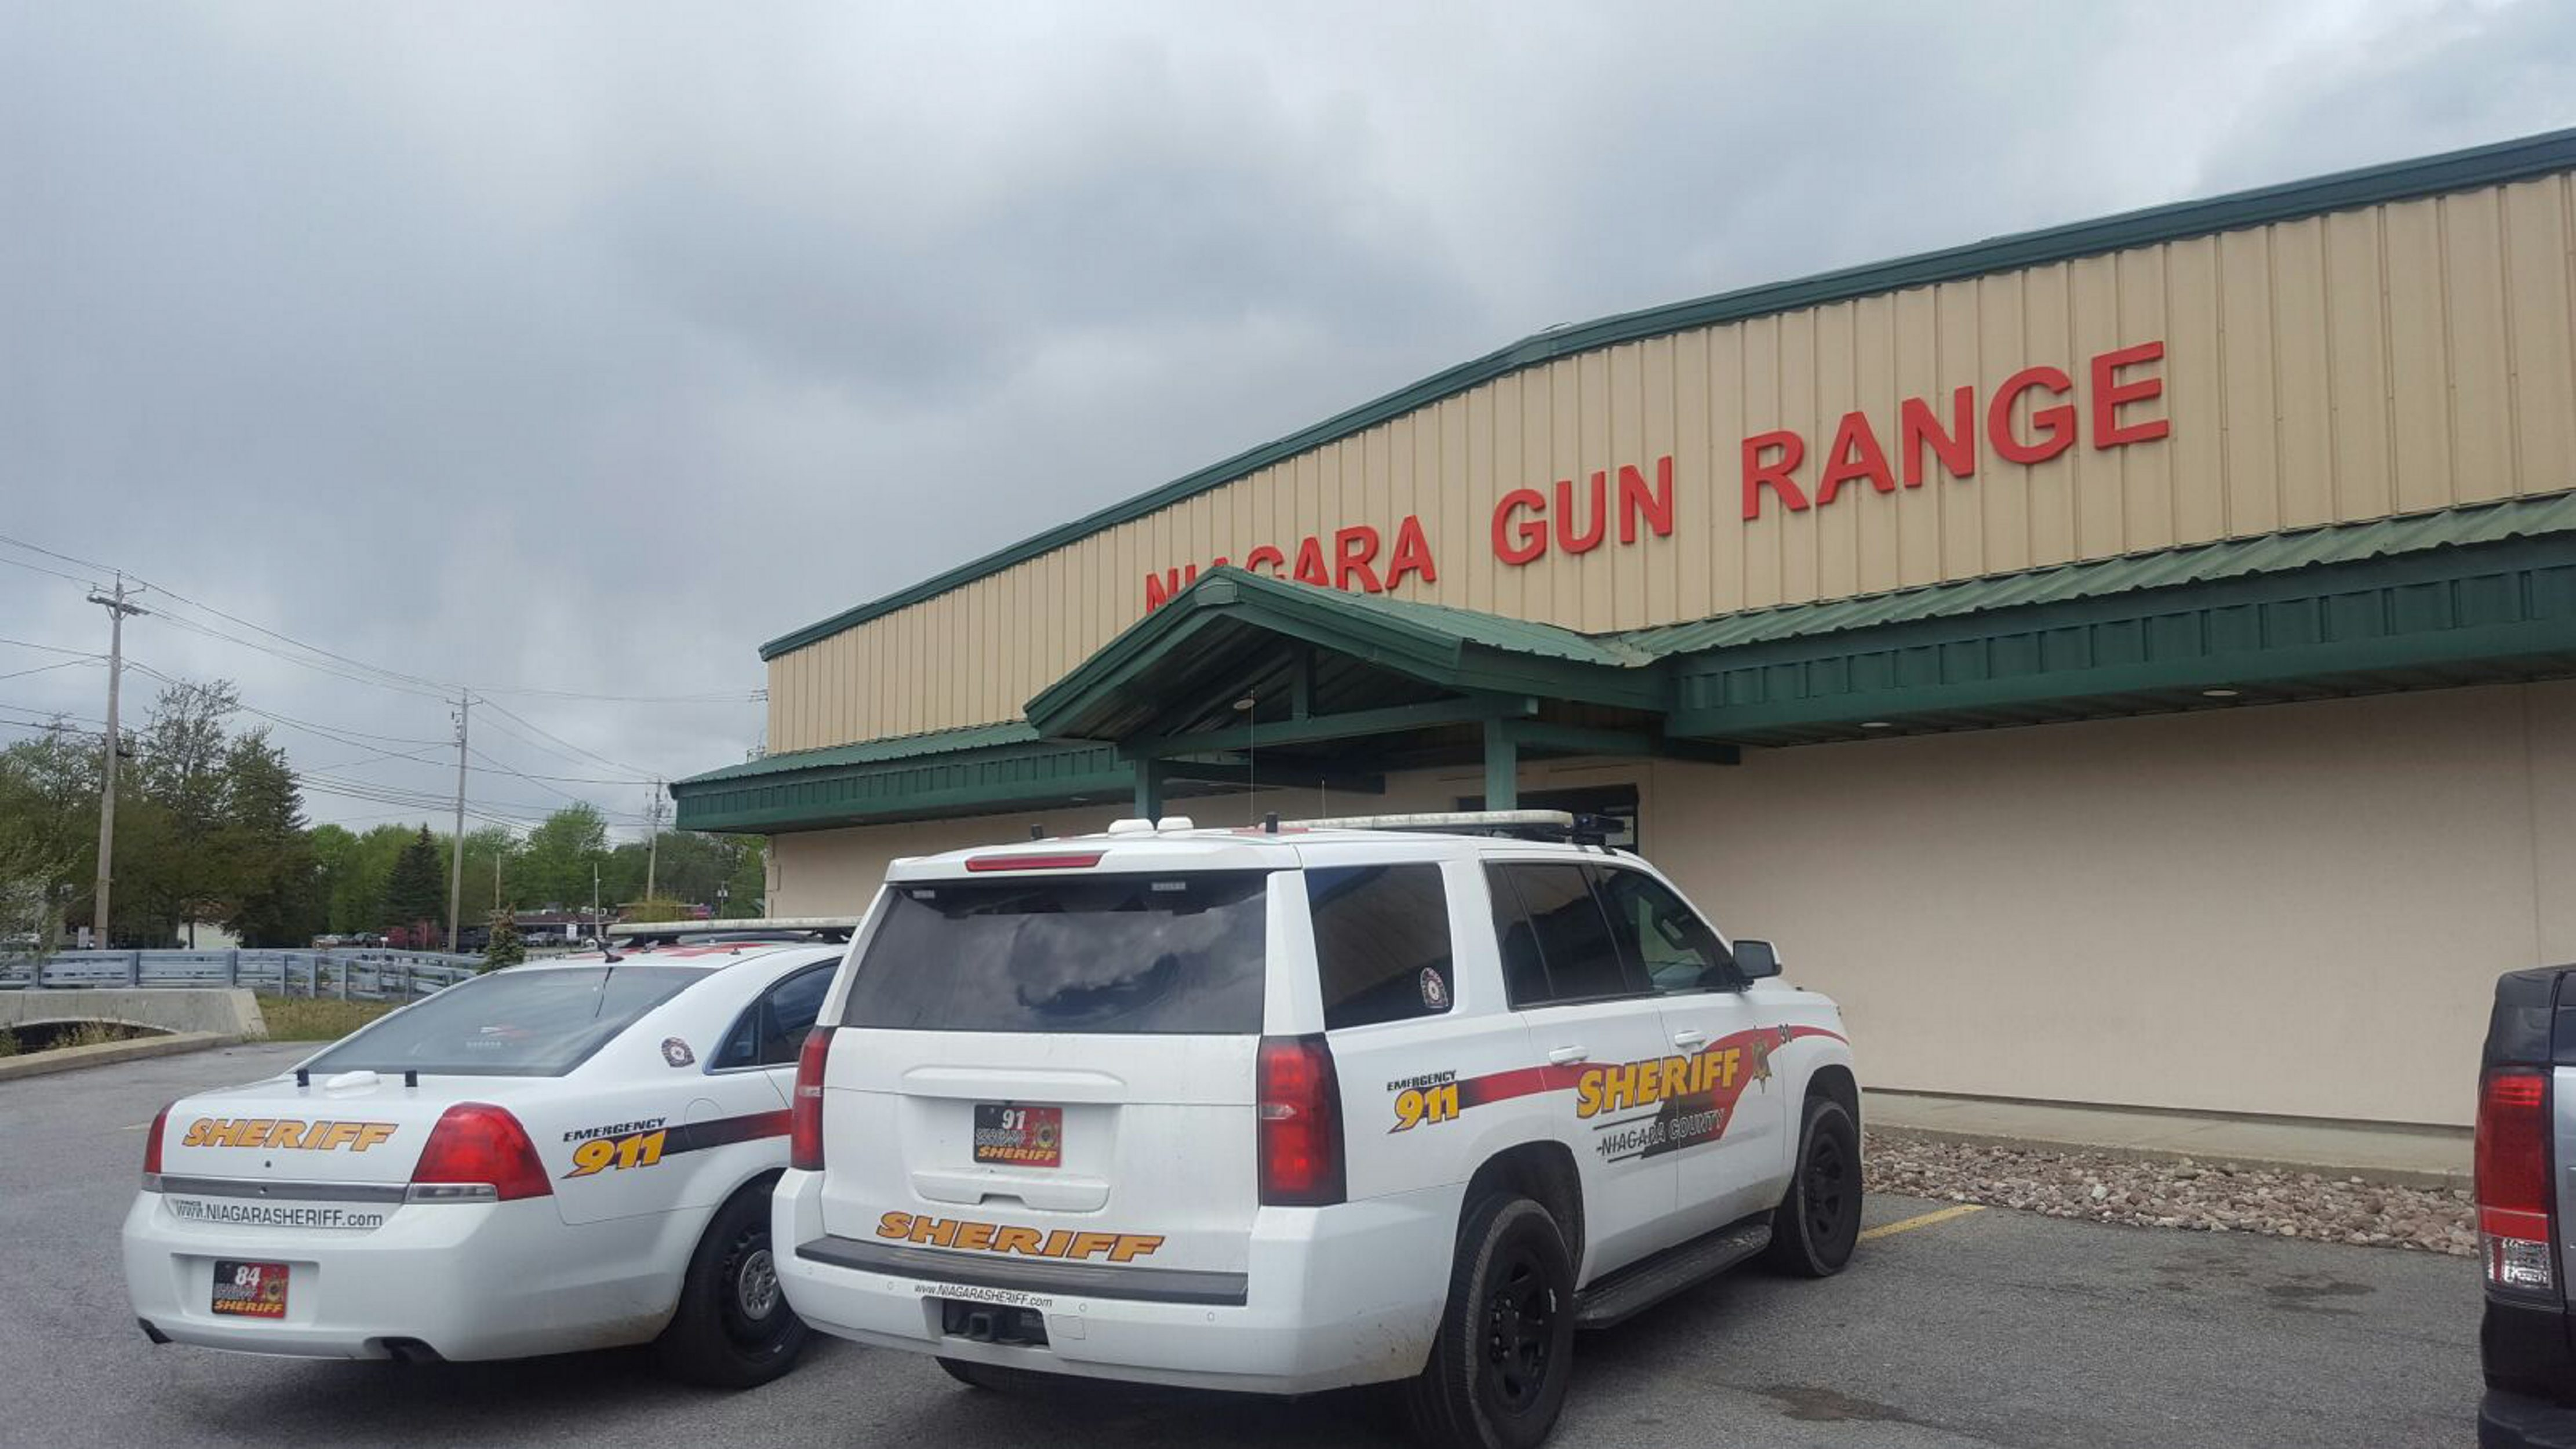 The scene at the Niagara Gun Range on Sunday. (Michelle Kearns/Buffalo News)